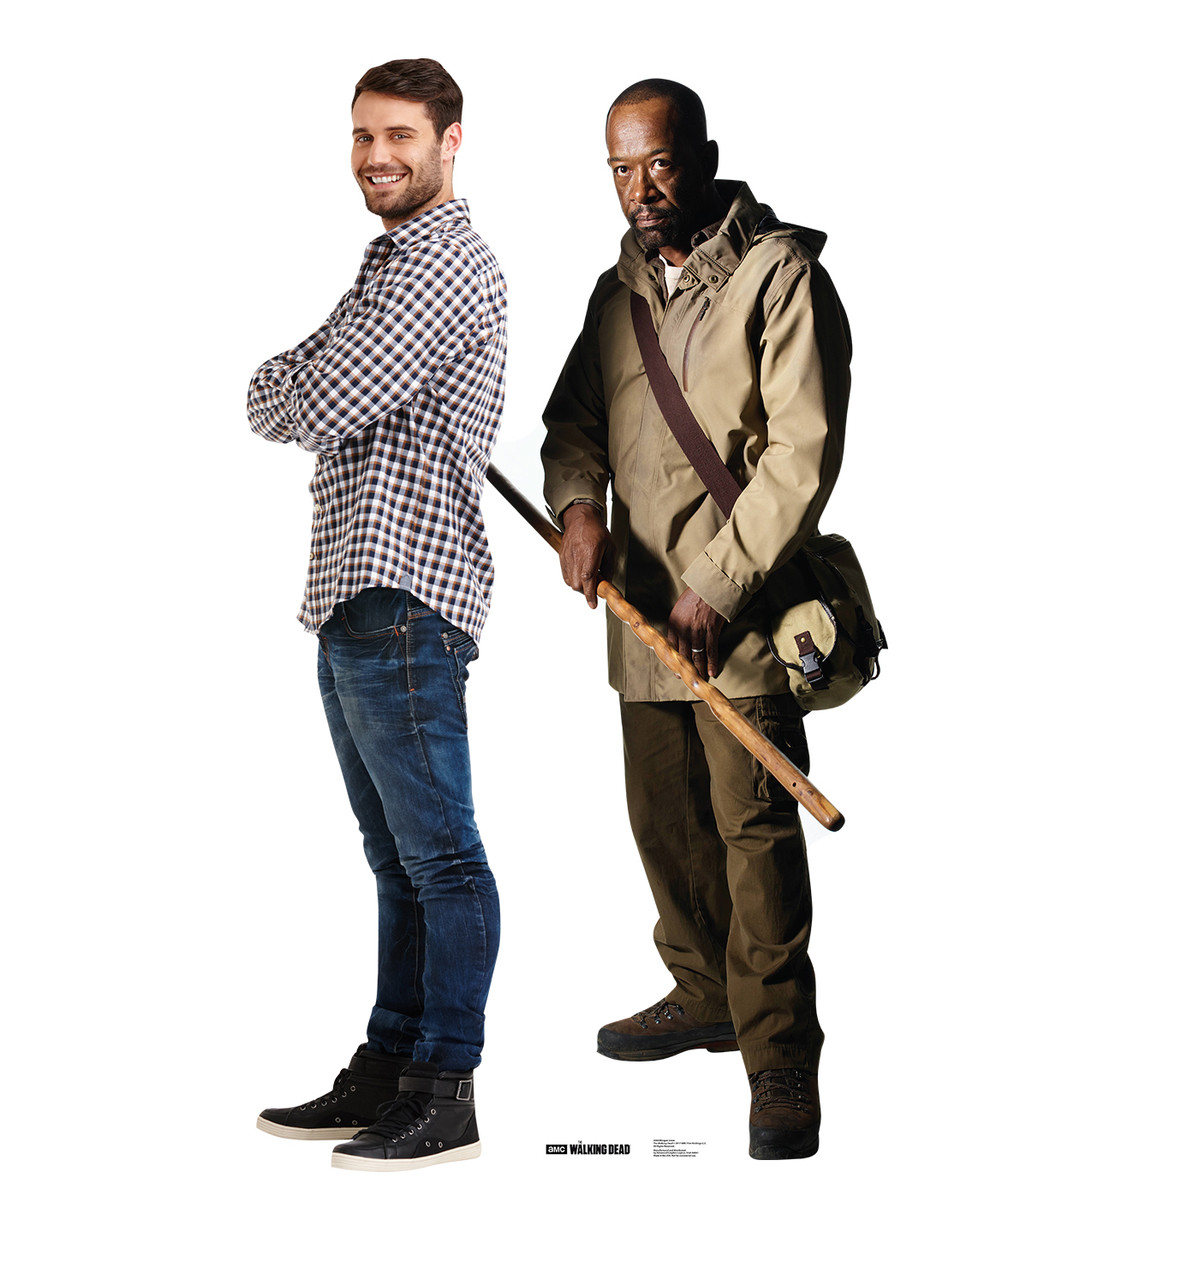 Life-size Morgan Jones (The Walking Dead) Cardboard Standup | Cardboard Cutout